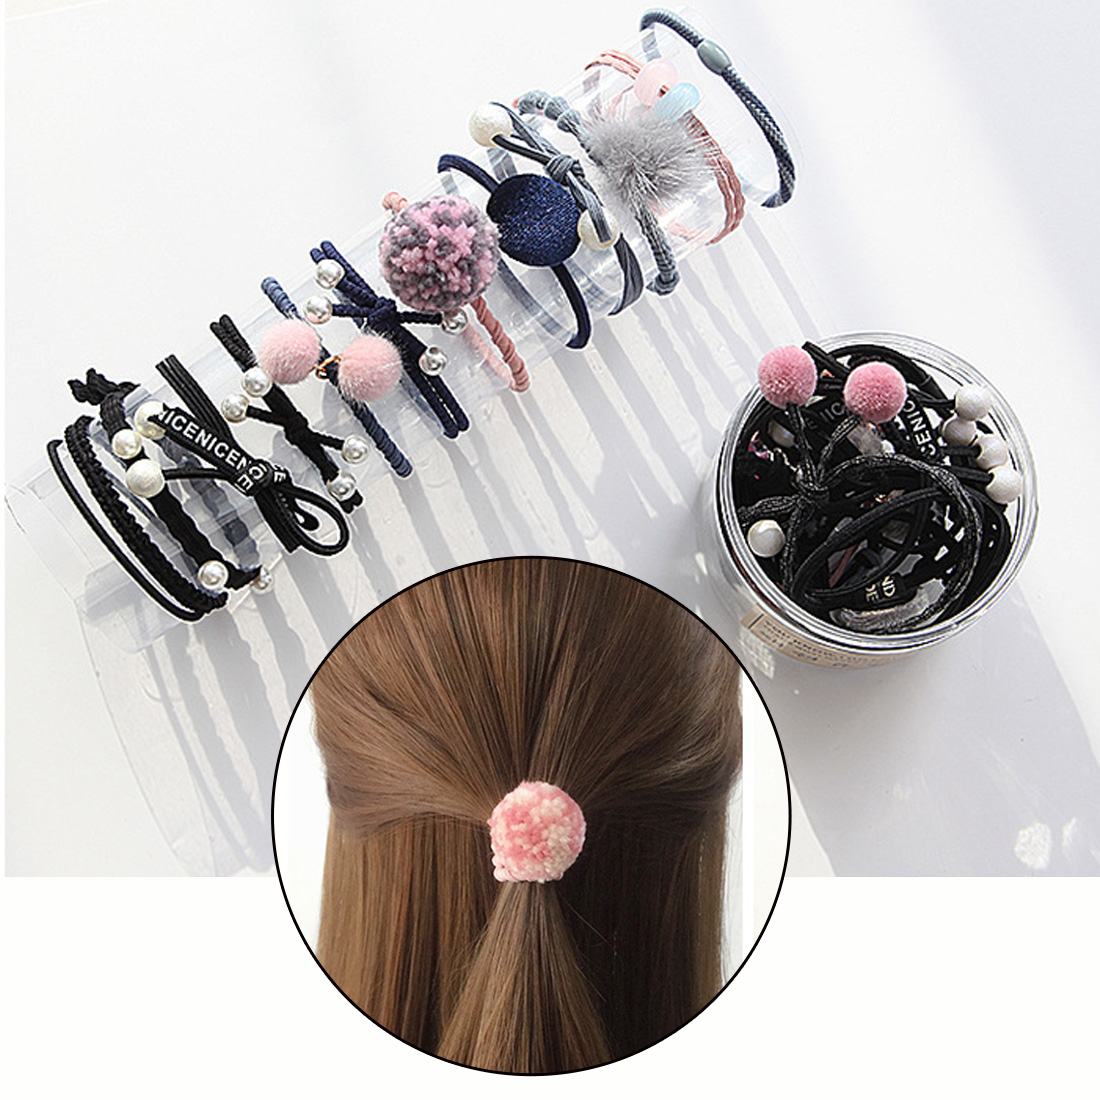 12pcs/set Girls Hair Band Cute ball Pearl Bow Elastic Rubber Bands Hair Ropes Ponytail Holder Tie Gum Hair Accessories new 10pcs women lady hair band velvet elastic ponytail tie bow rubber bobbles lovely